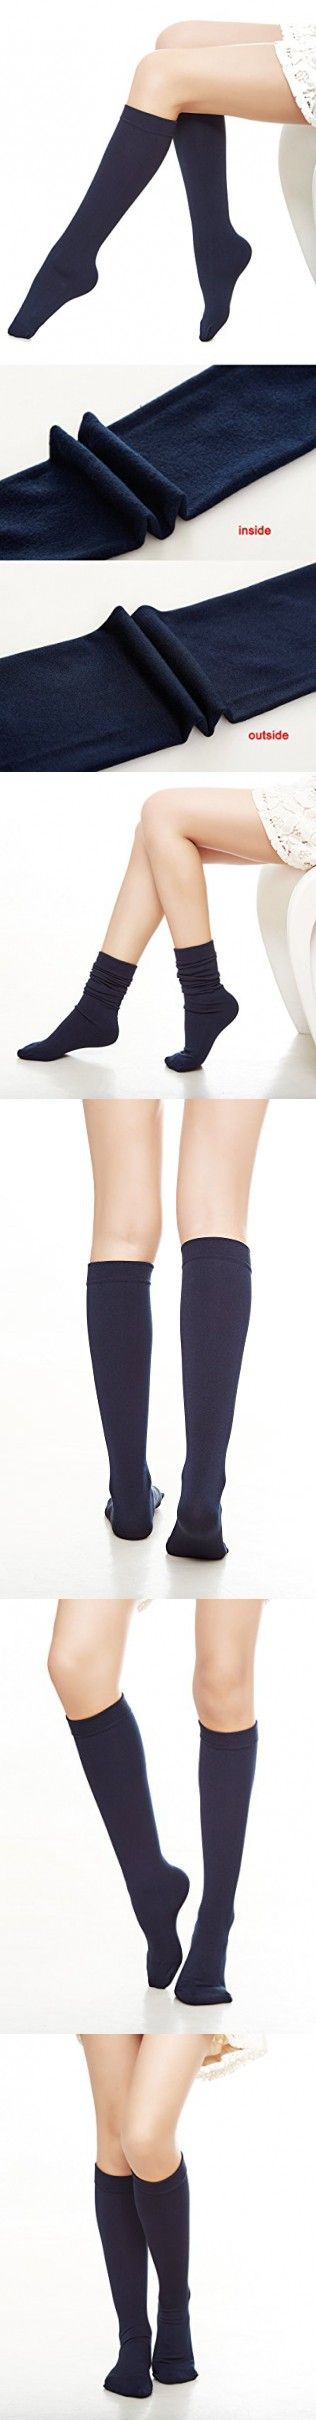 sh Fleece Lined Trouser Socks Knee High Stocking(navy)